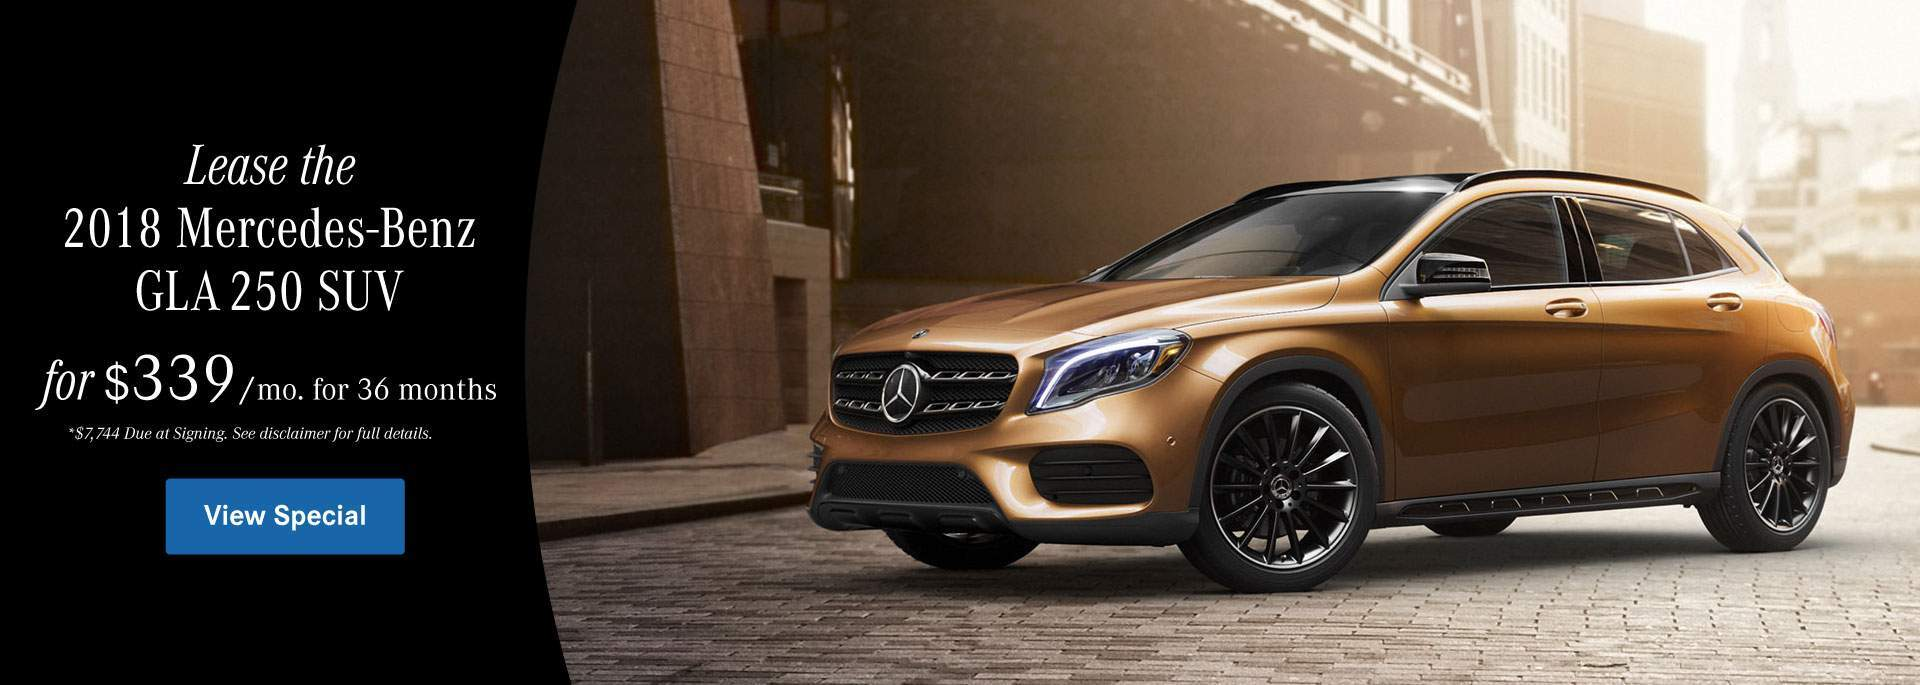 Mercedes benz lease texas fiat world test drive for Mercedes benz houston lease